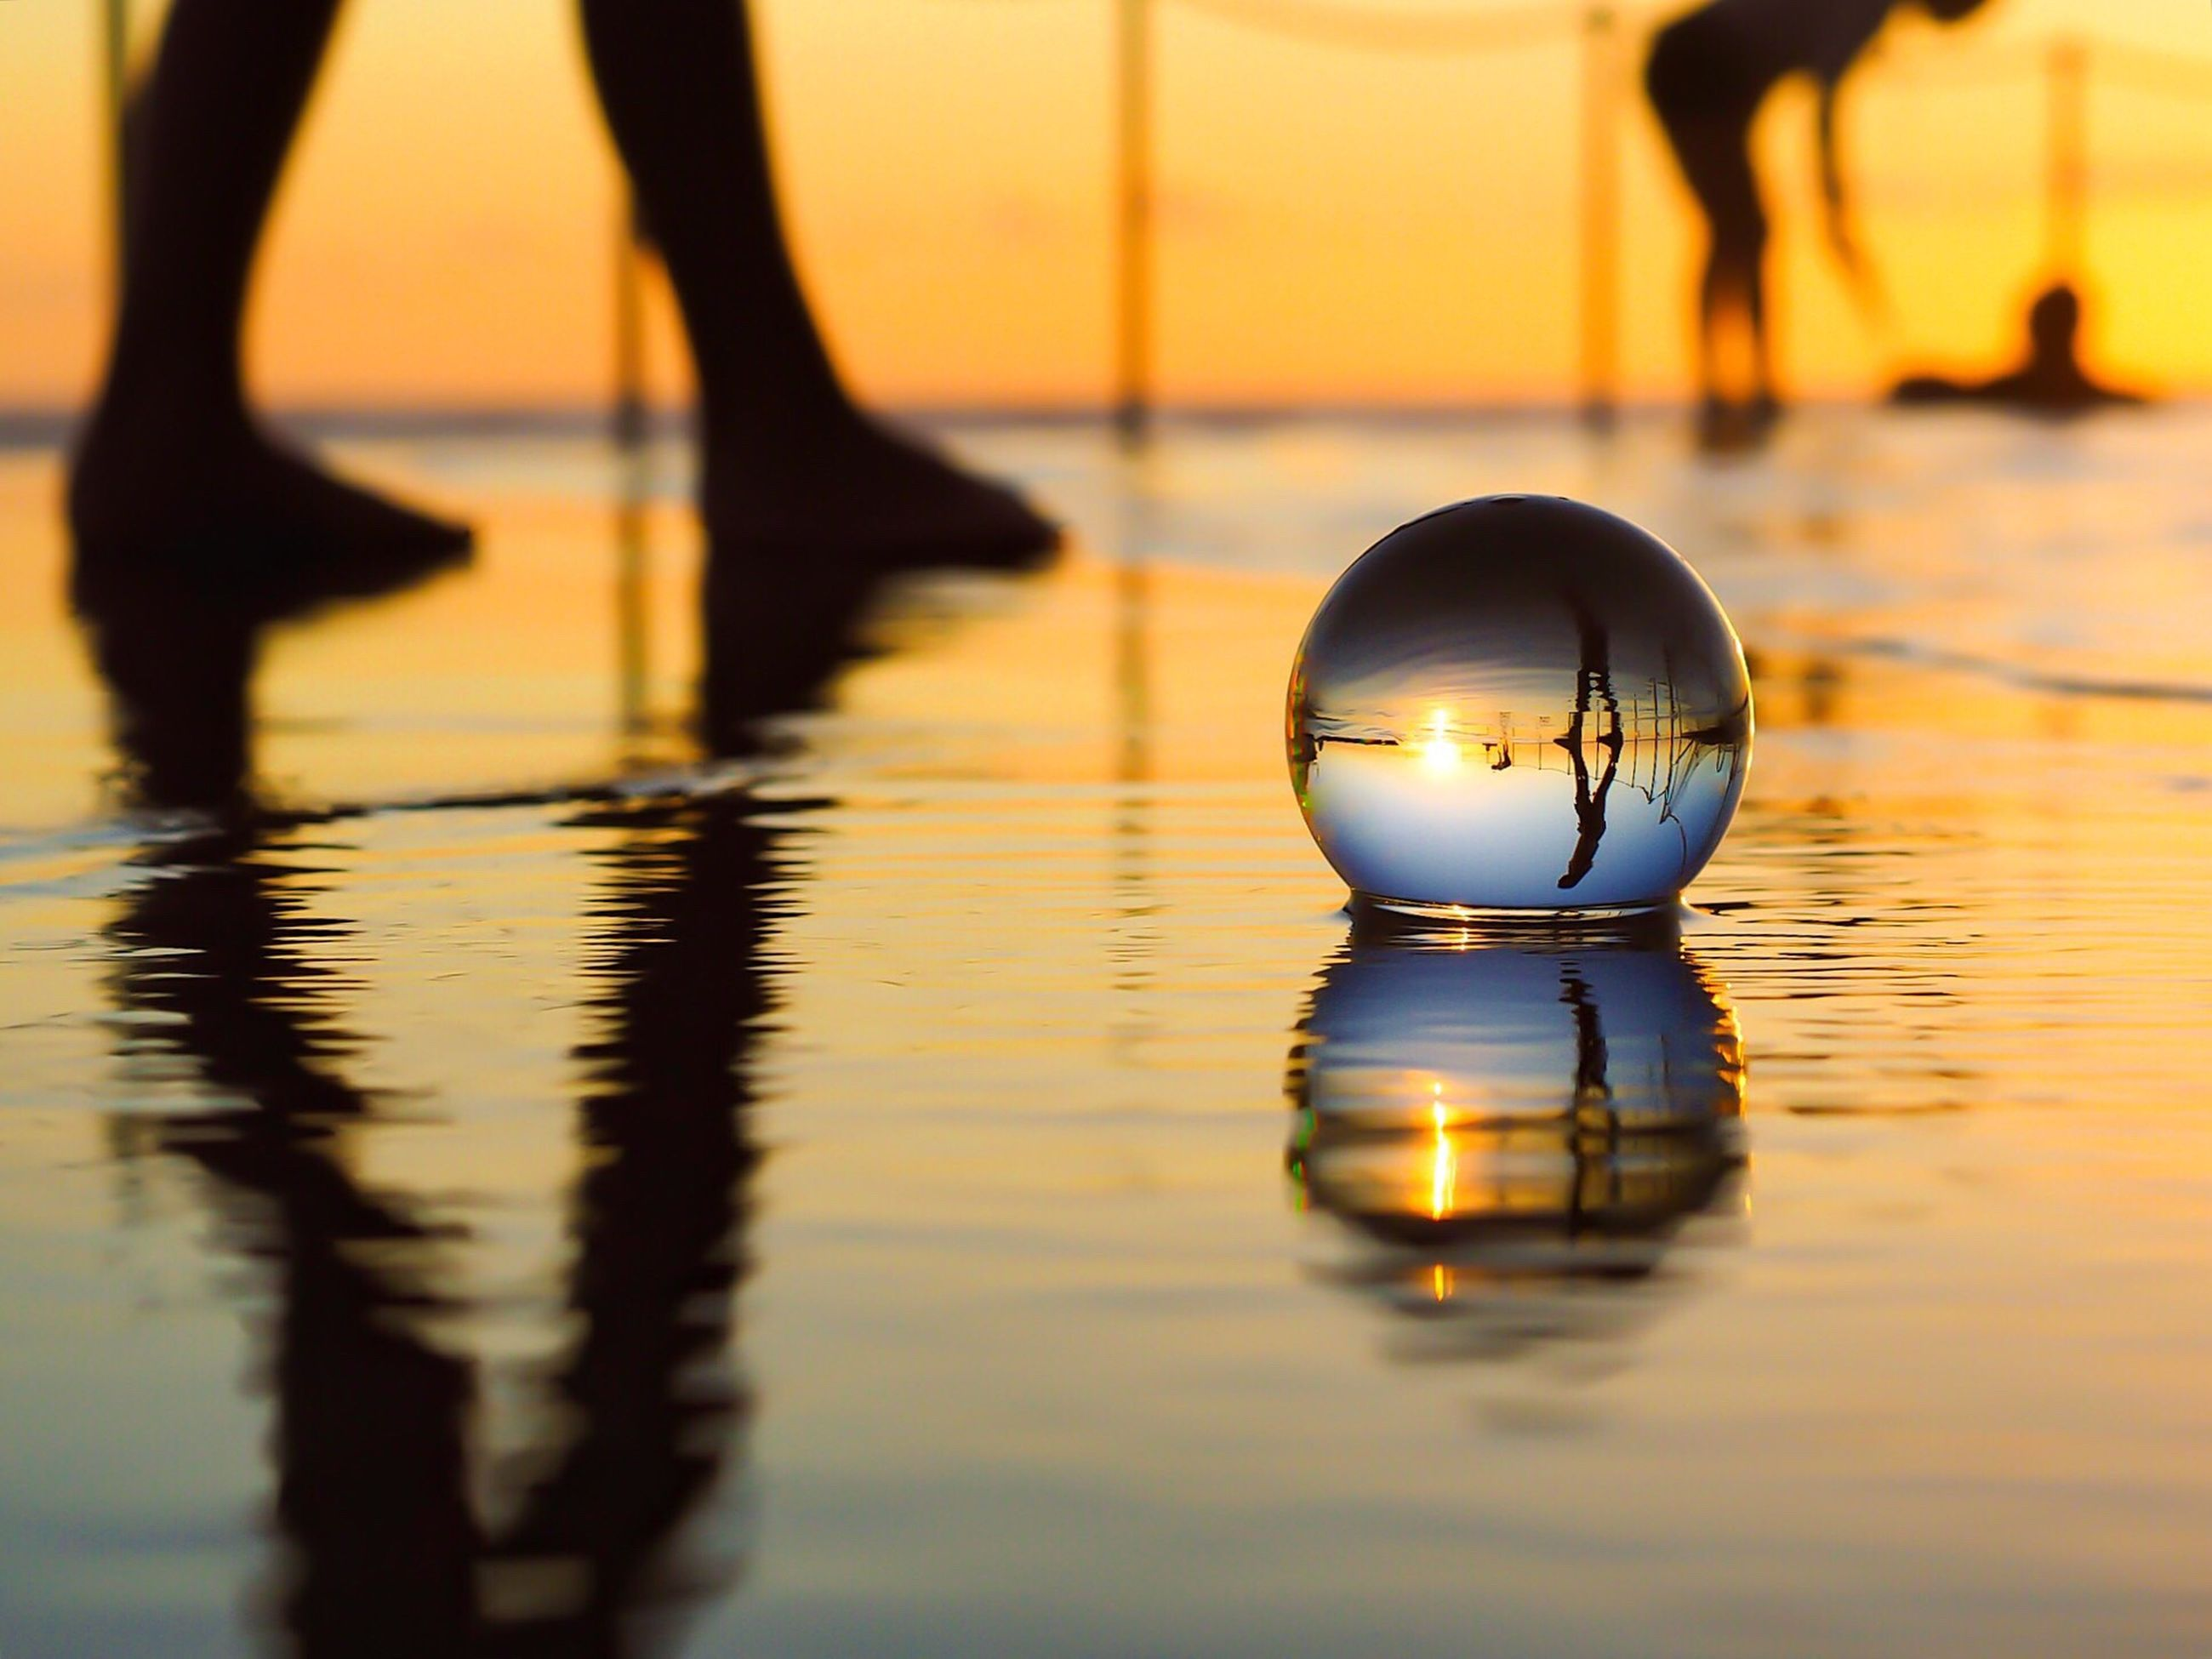 reflection, water, illuminated, sunset, lighting equipment, silhouette, waterfront, mid-air, focus on foreground, dusk, sphere, sky, street light, light bulb, close-up, outdoors, night, ball, electric light, no people